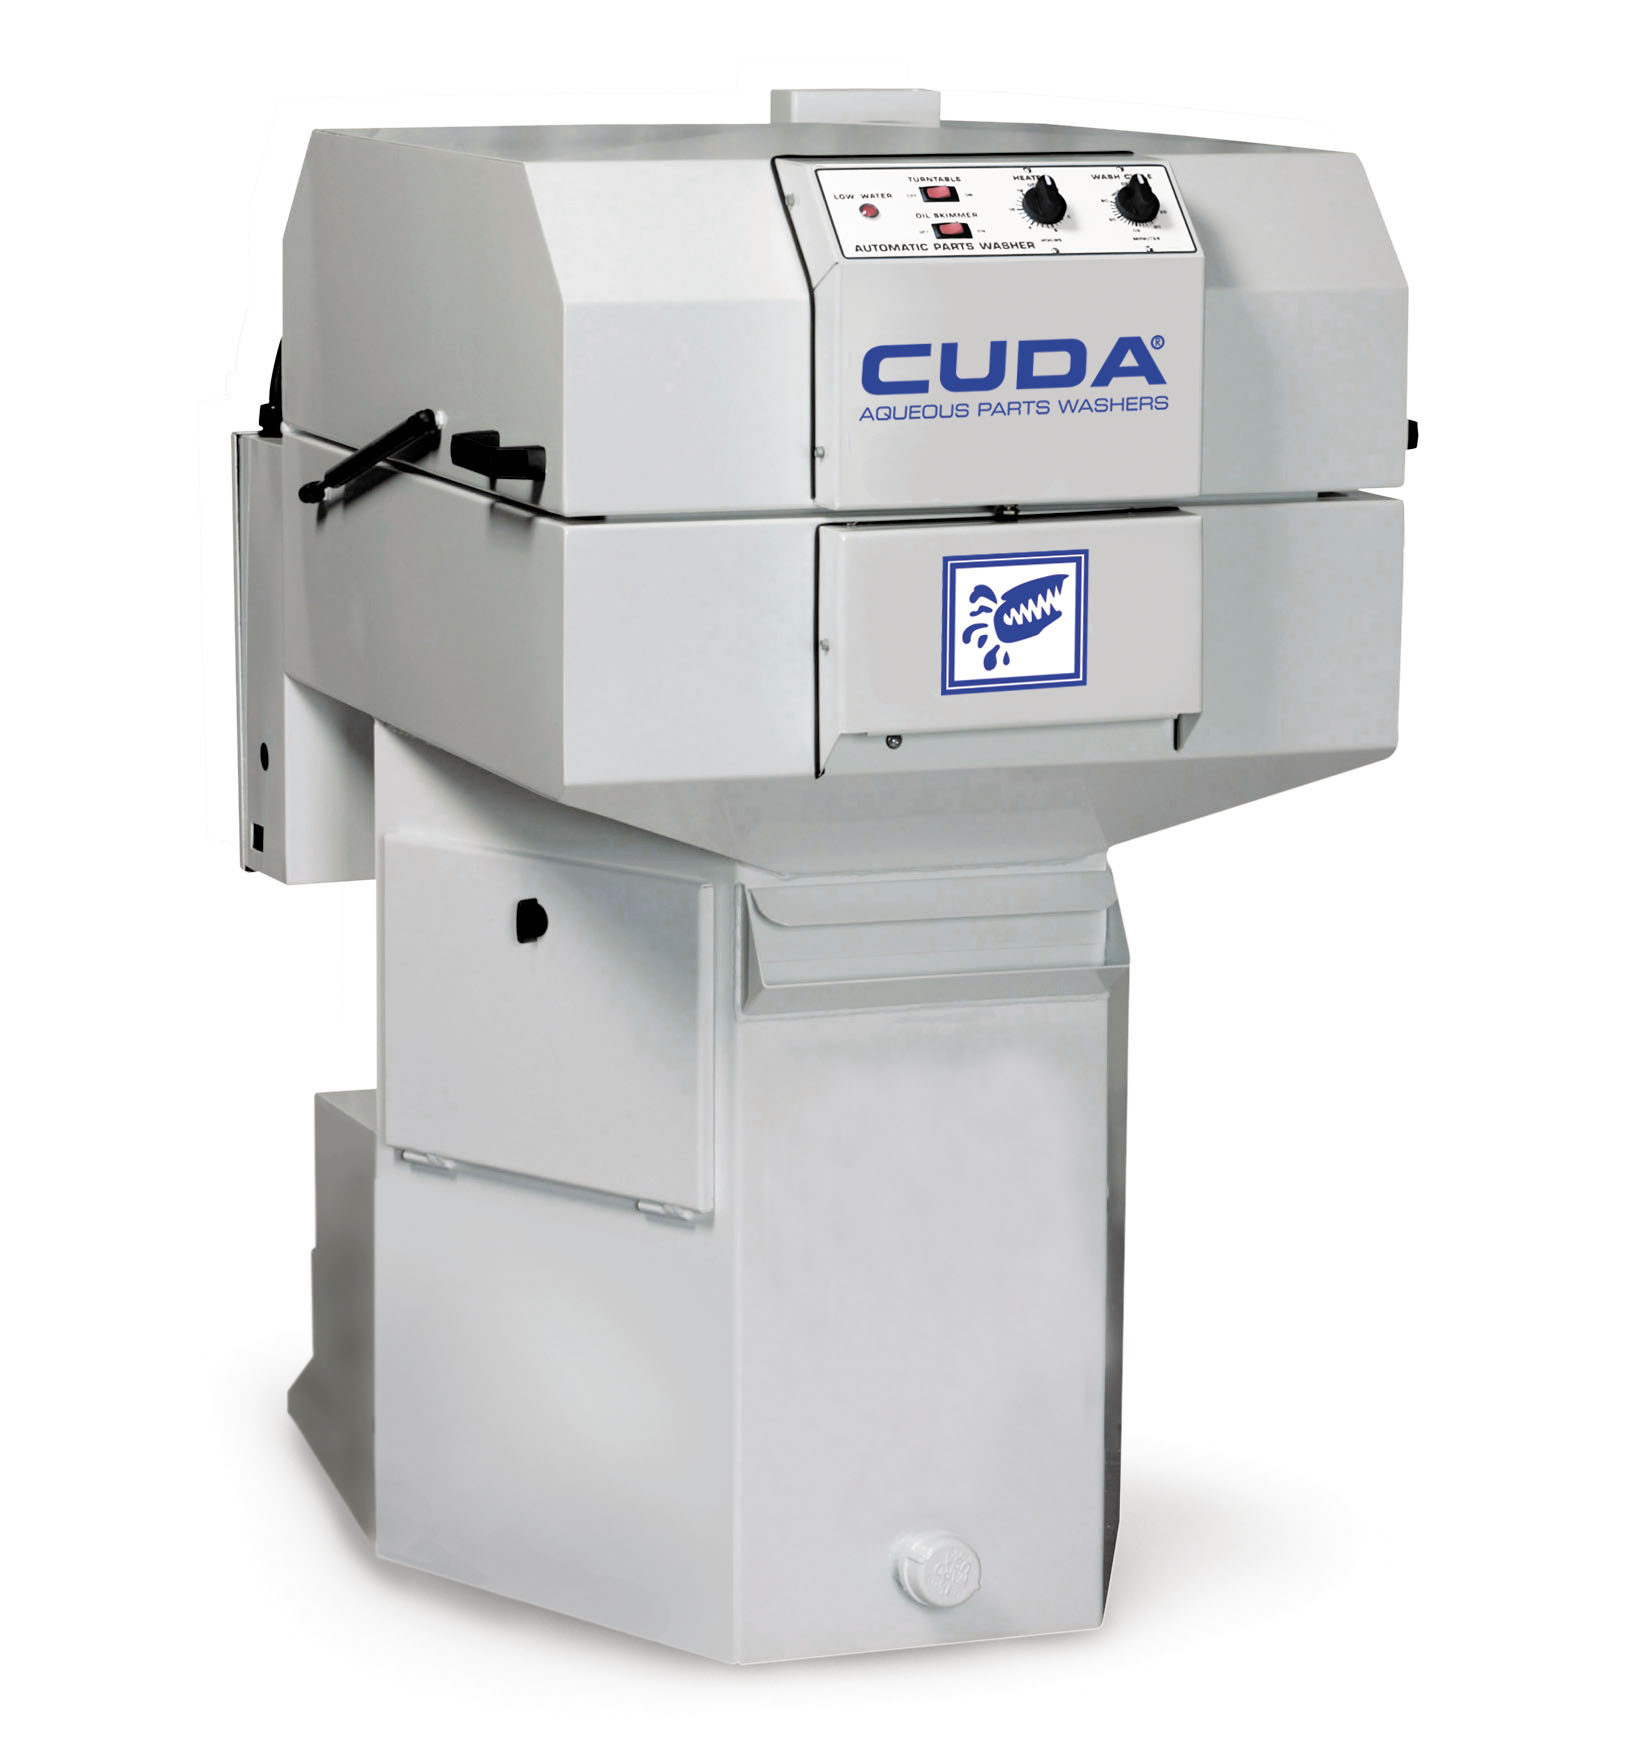 Cuda Top Load Automatic Parts Washer H2O-2216